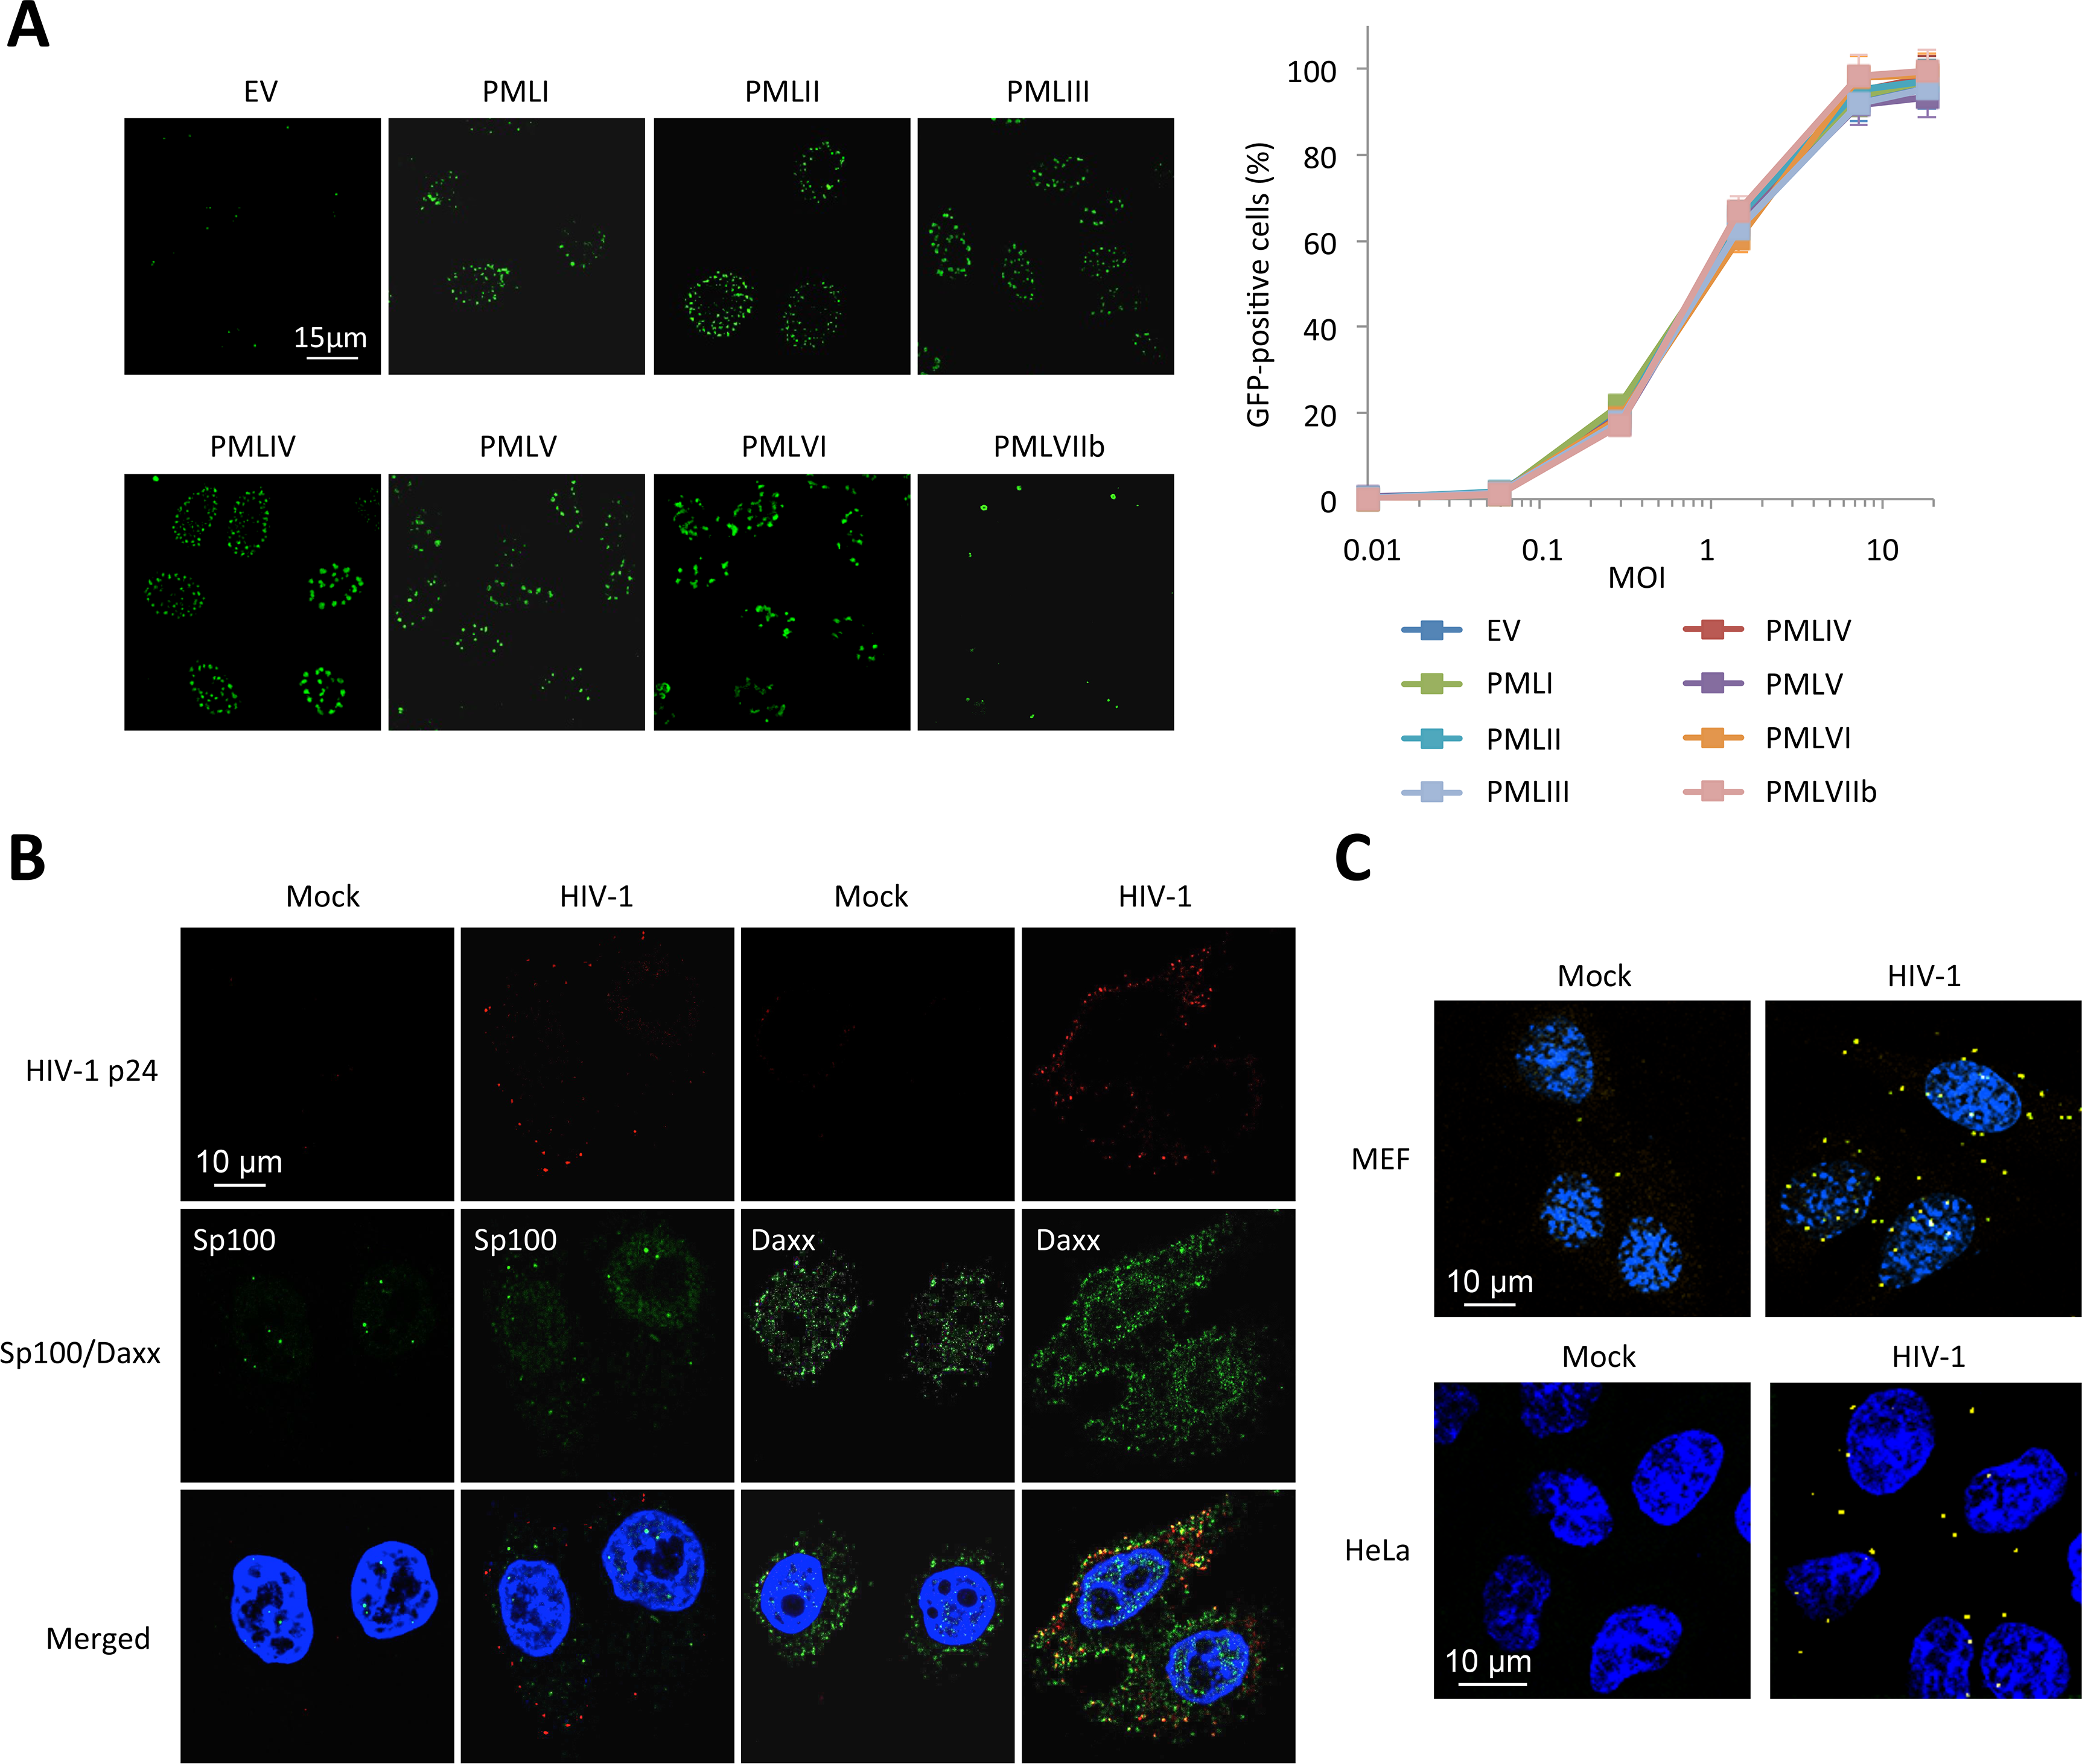 PML is not the main mediator of HIV-1 restriction.